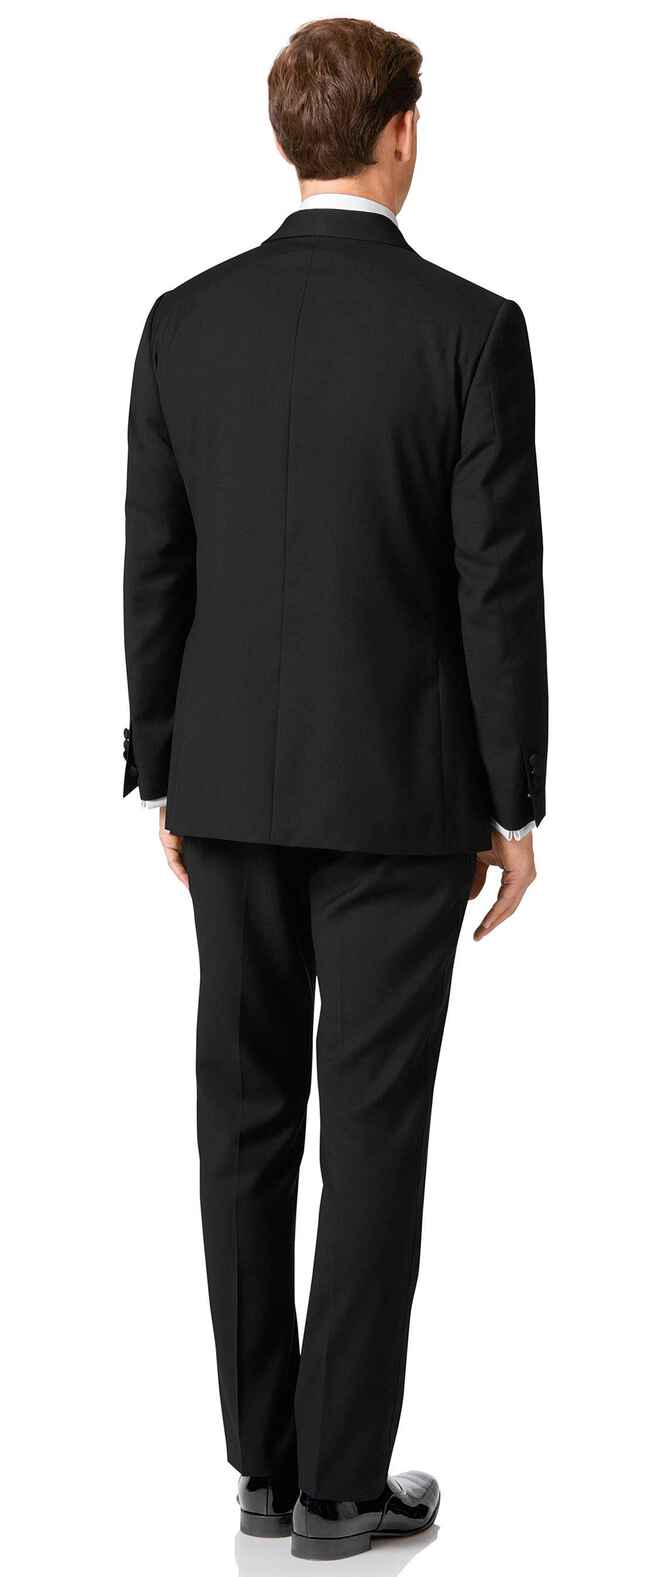 Black classic fit shawl collar dinner suit